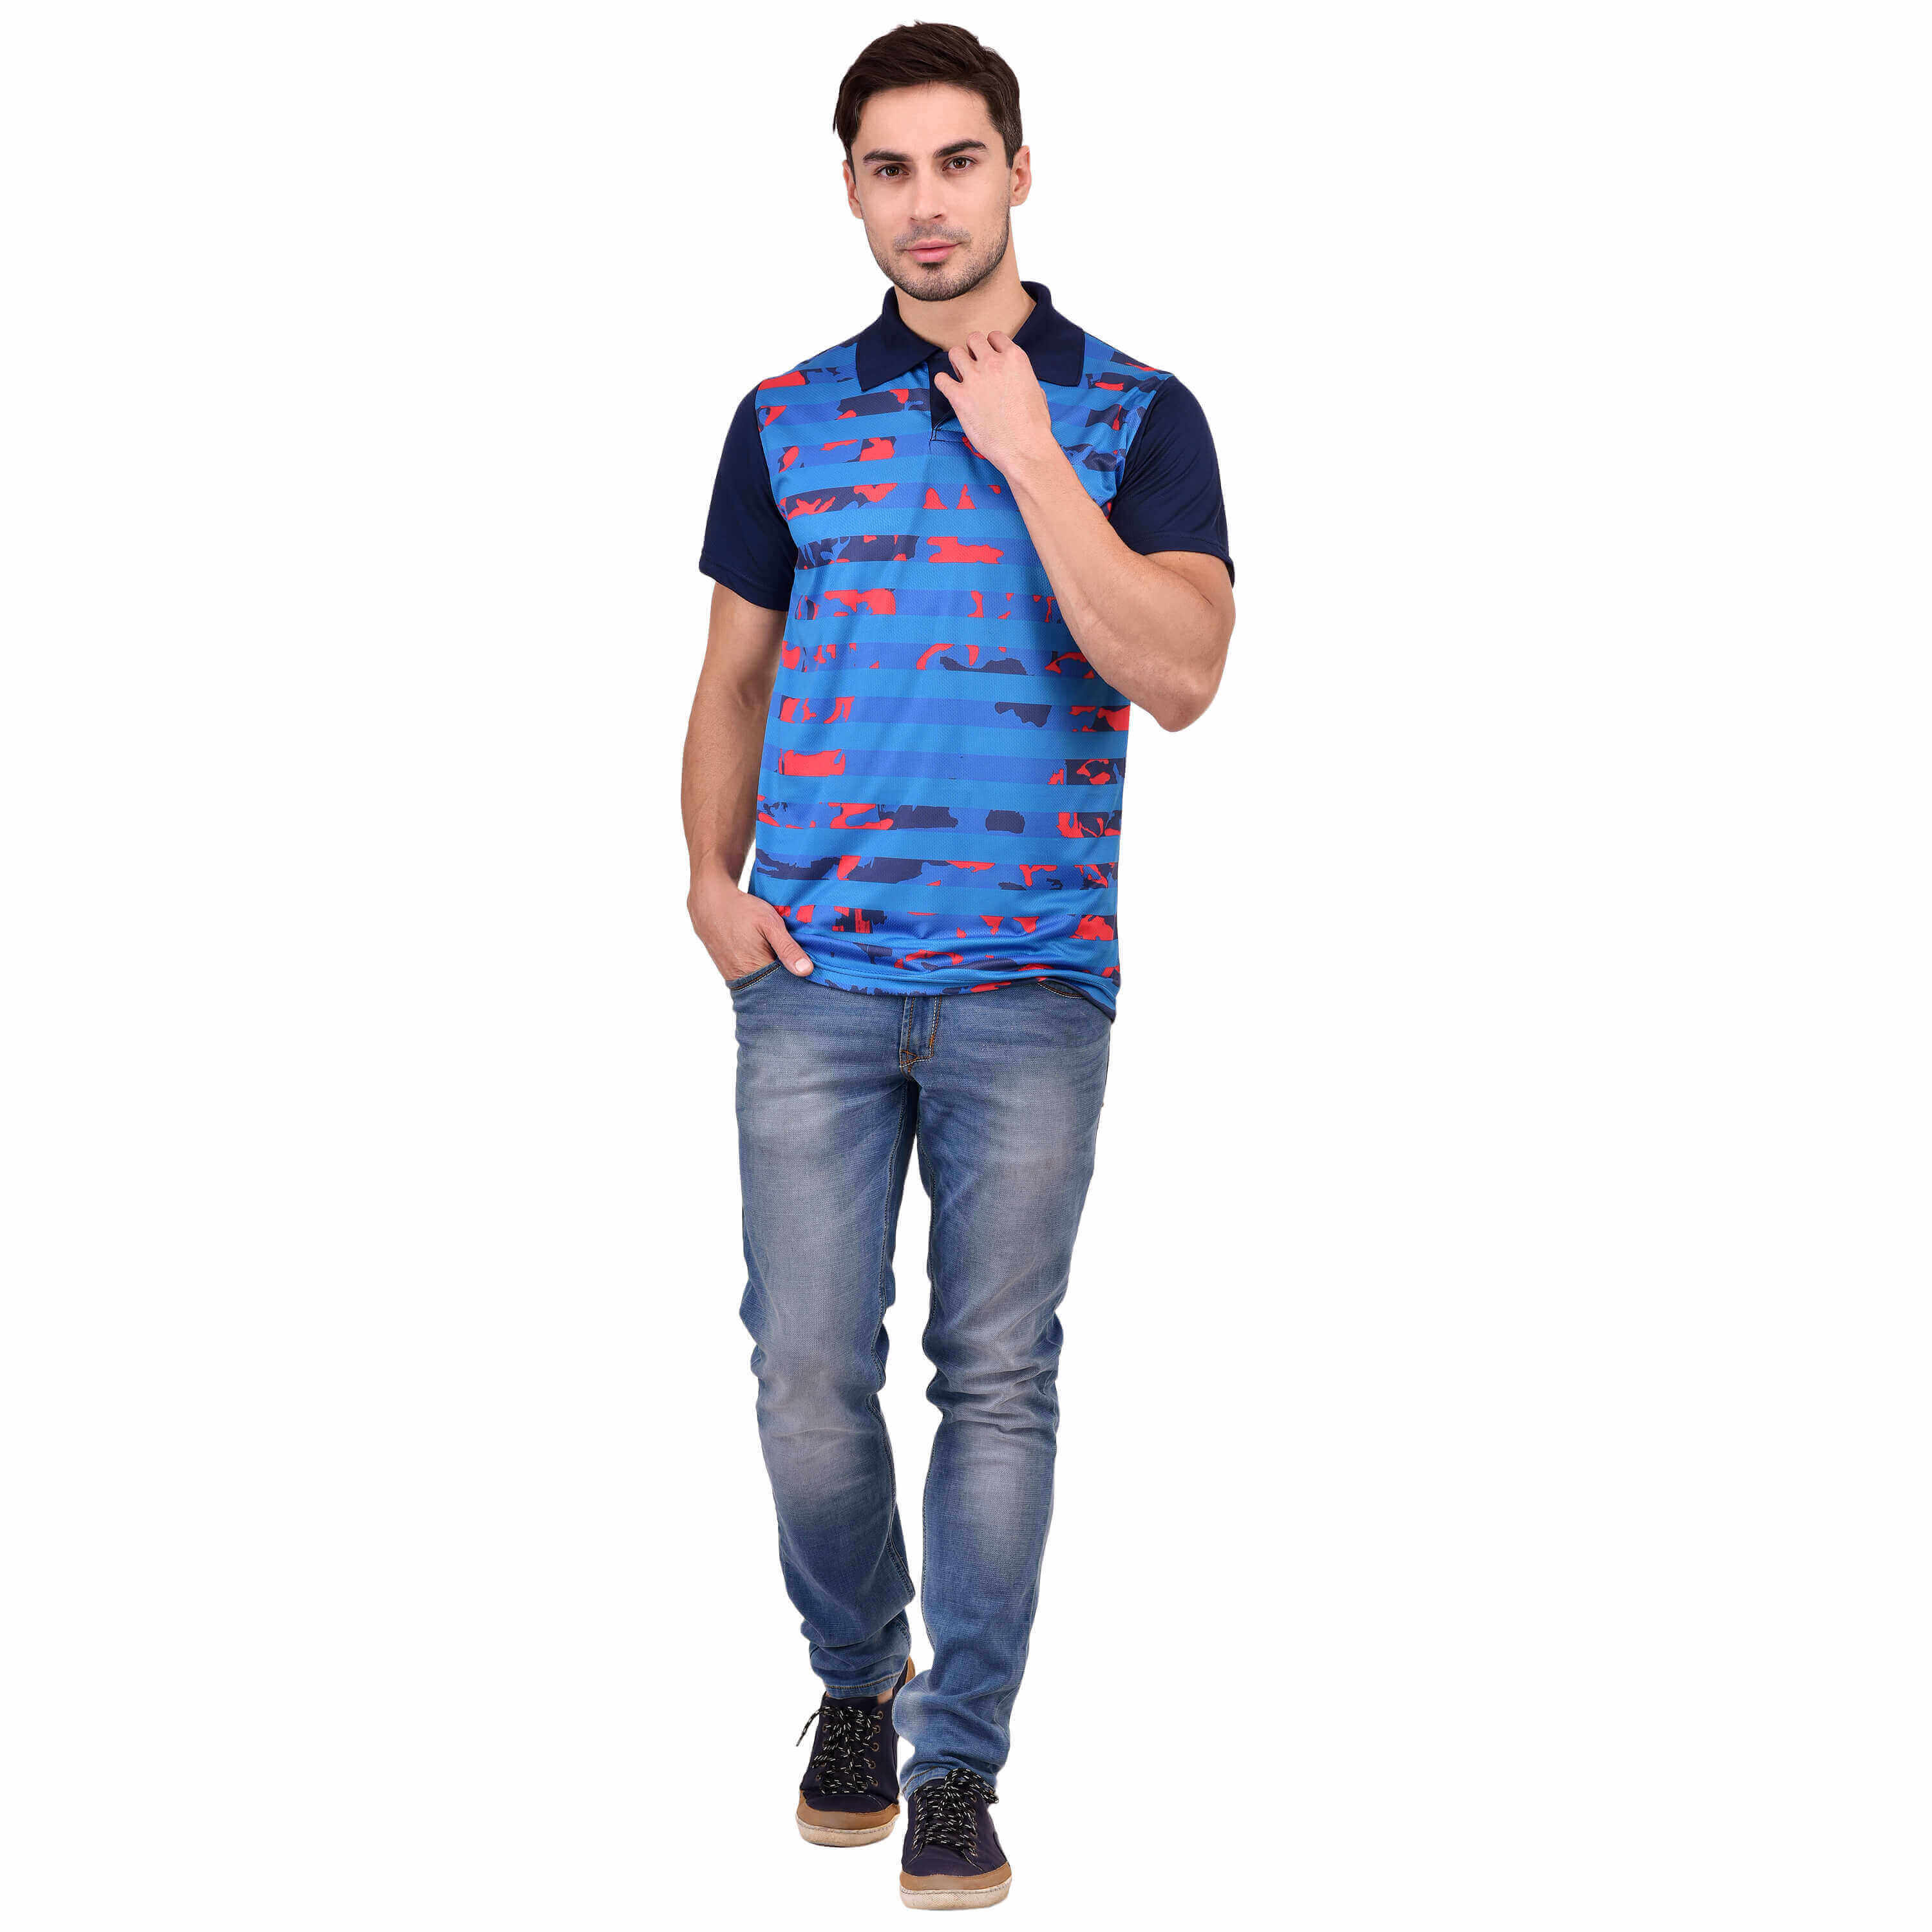 Cool T Shirts Manufacturers in Nanded